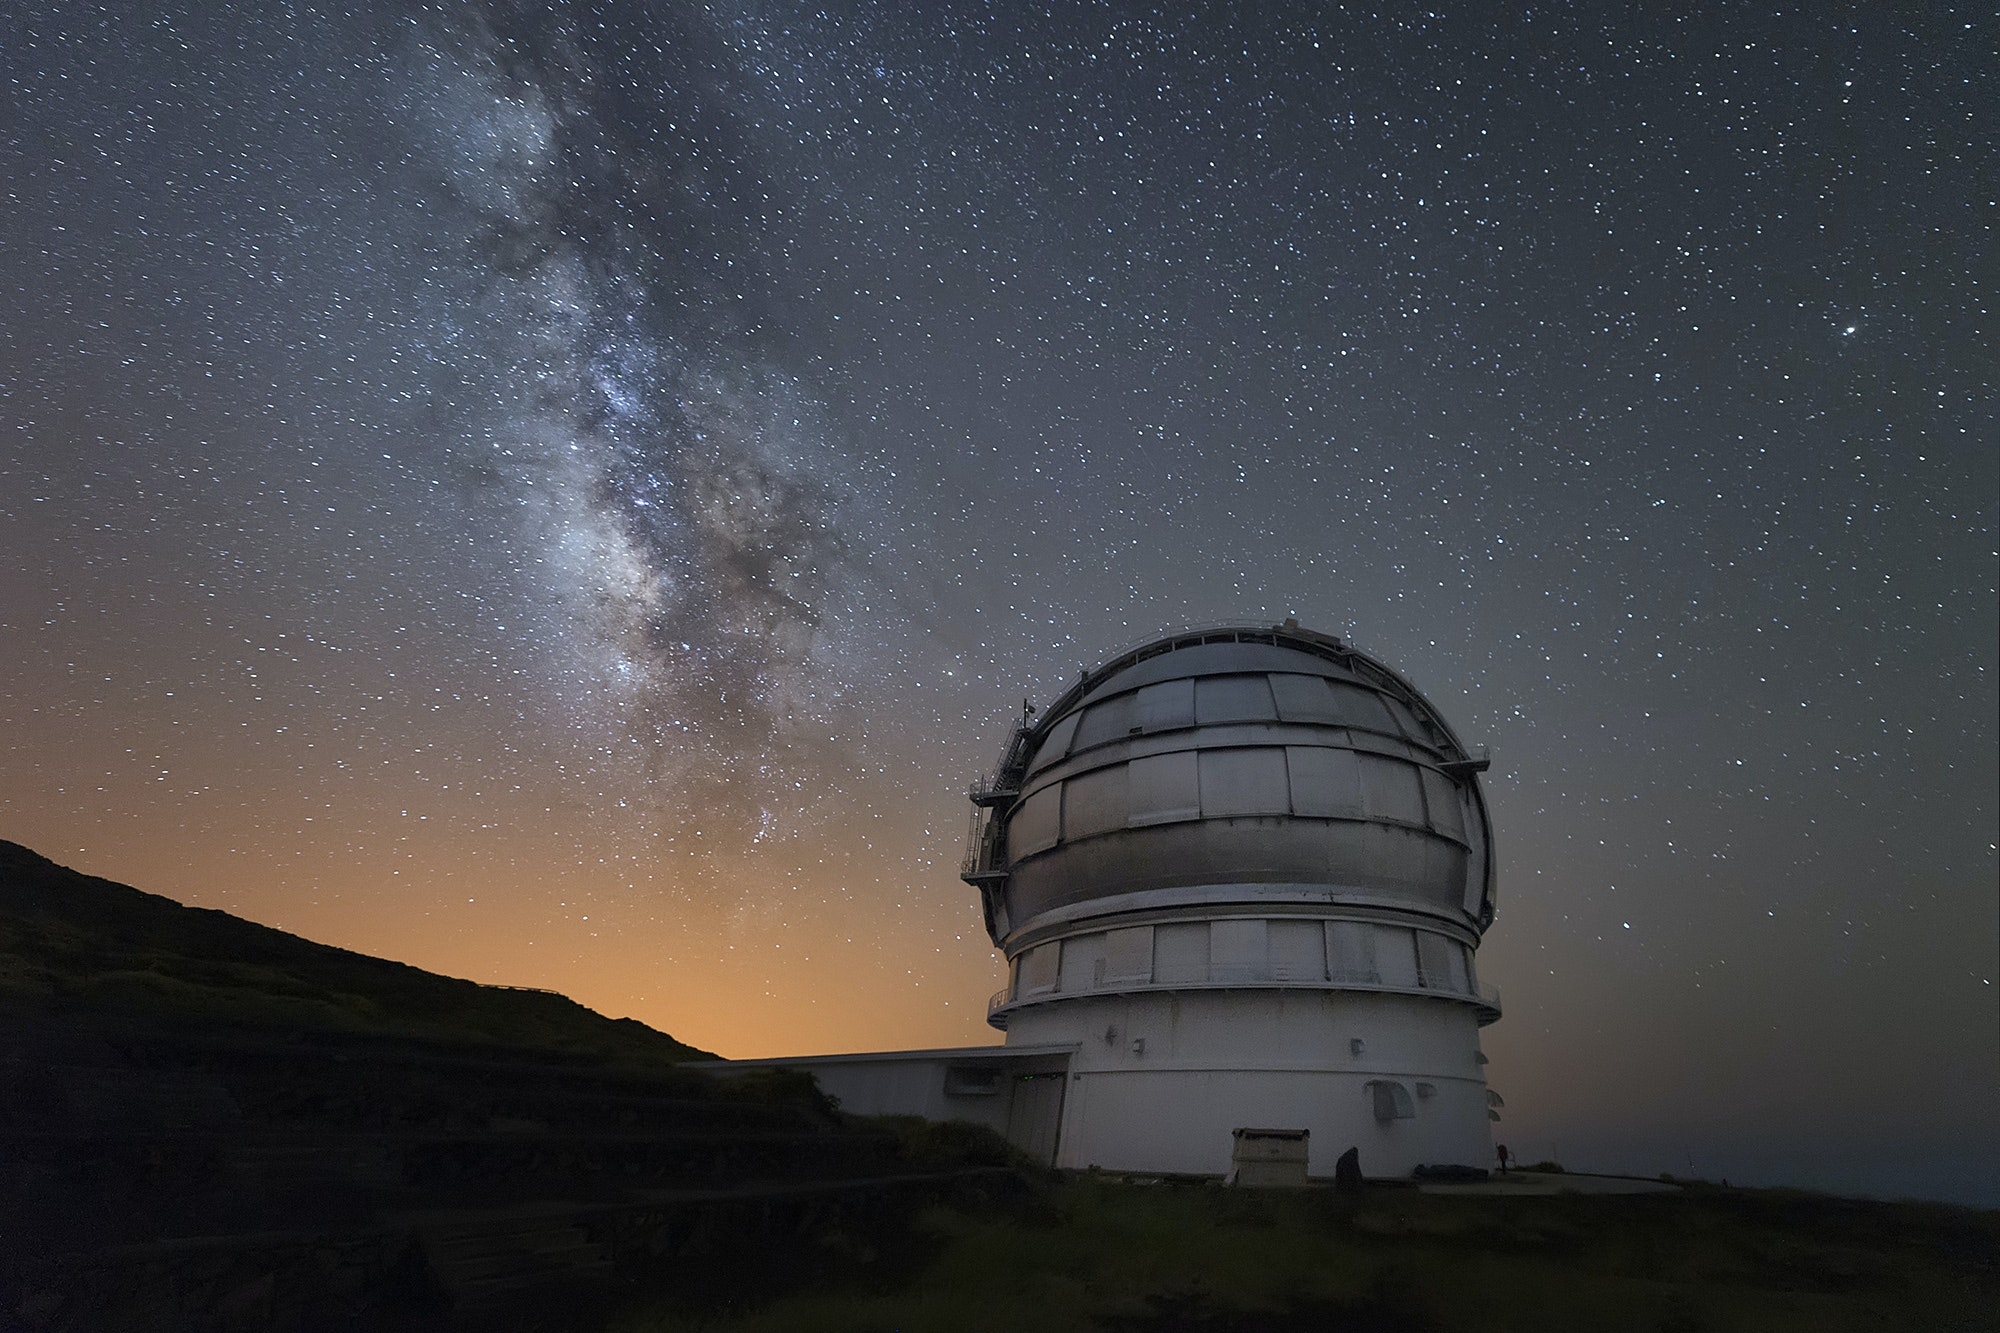 Spain's Gran Telescopio Canarias in La Palma